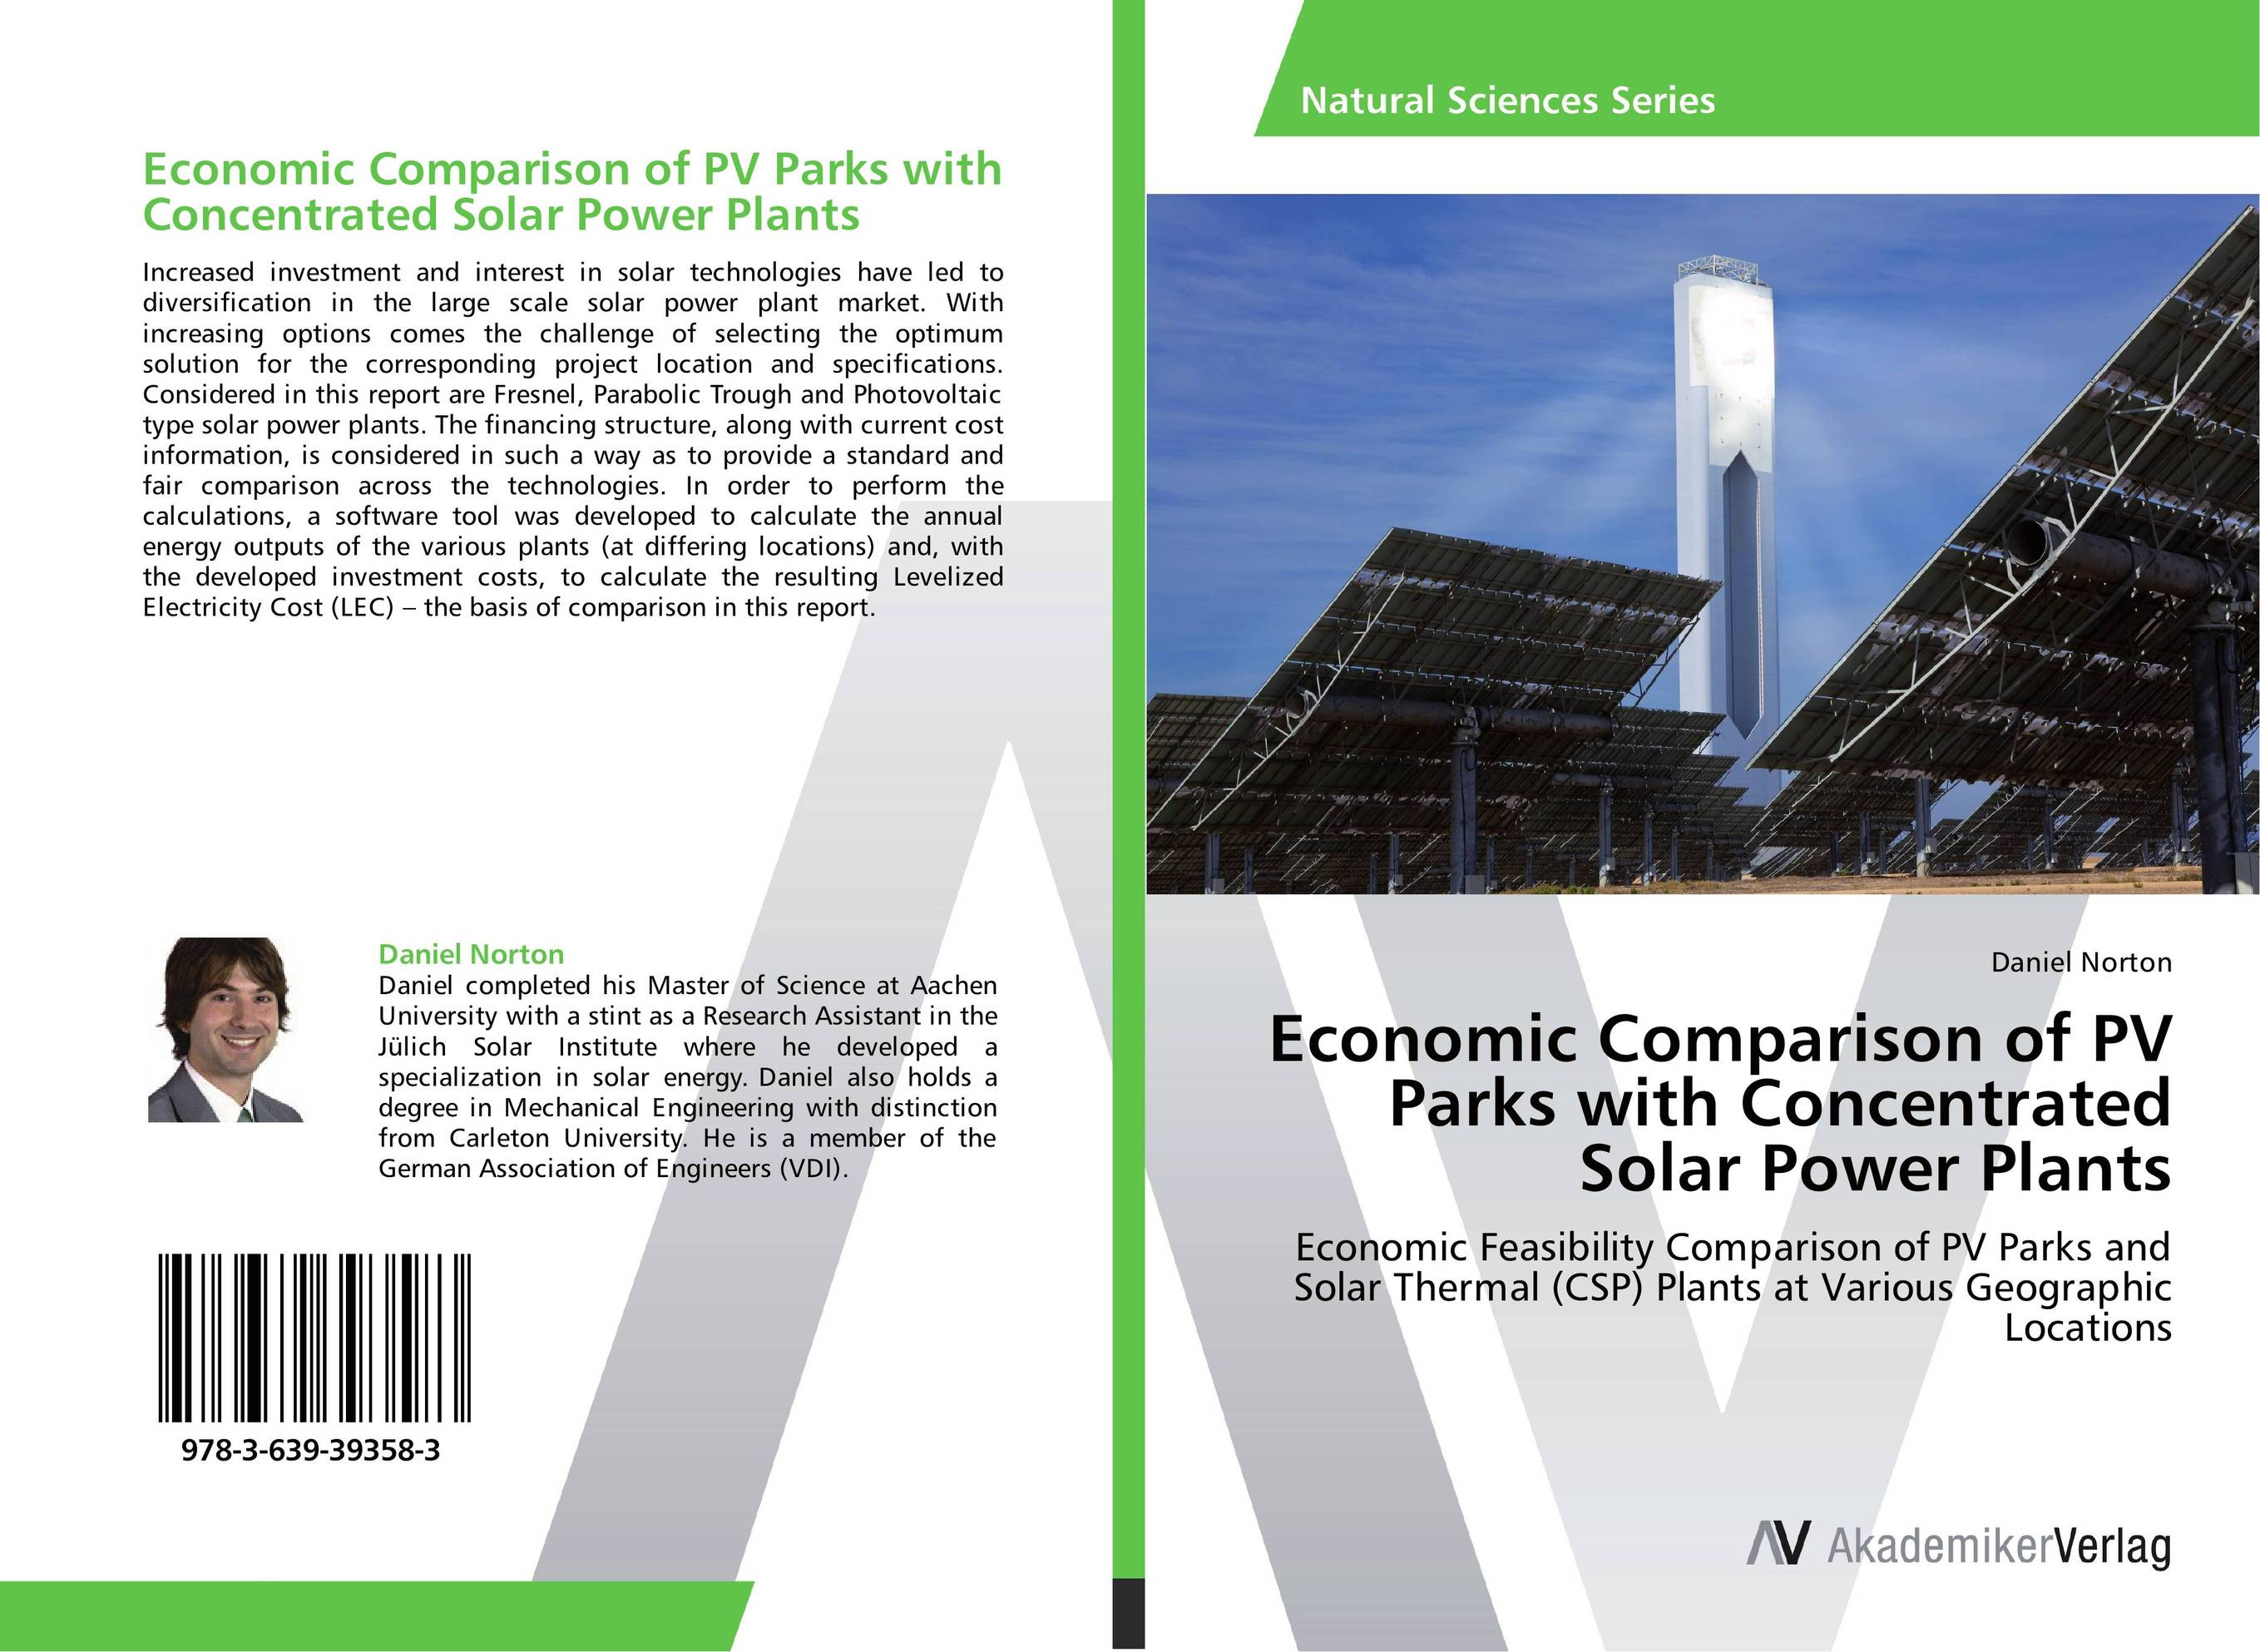 Economic Comparison of PV Parks with Concentrated Solar Power Plants van dyke parks van dyke parks clang of the yankee reaper